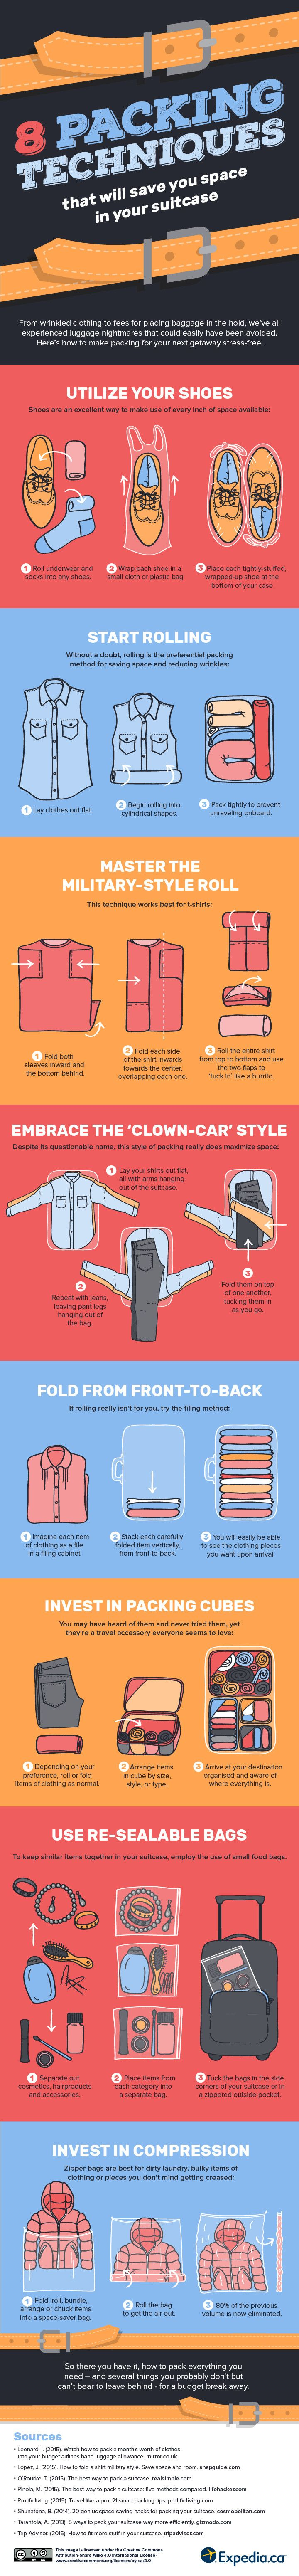 Ways to Make Your Next Family Vacation a Whole Lot Easier 8 Suitcase Hacks For Frequent Travellers [Infographic] | Lifehacker Australia